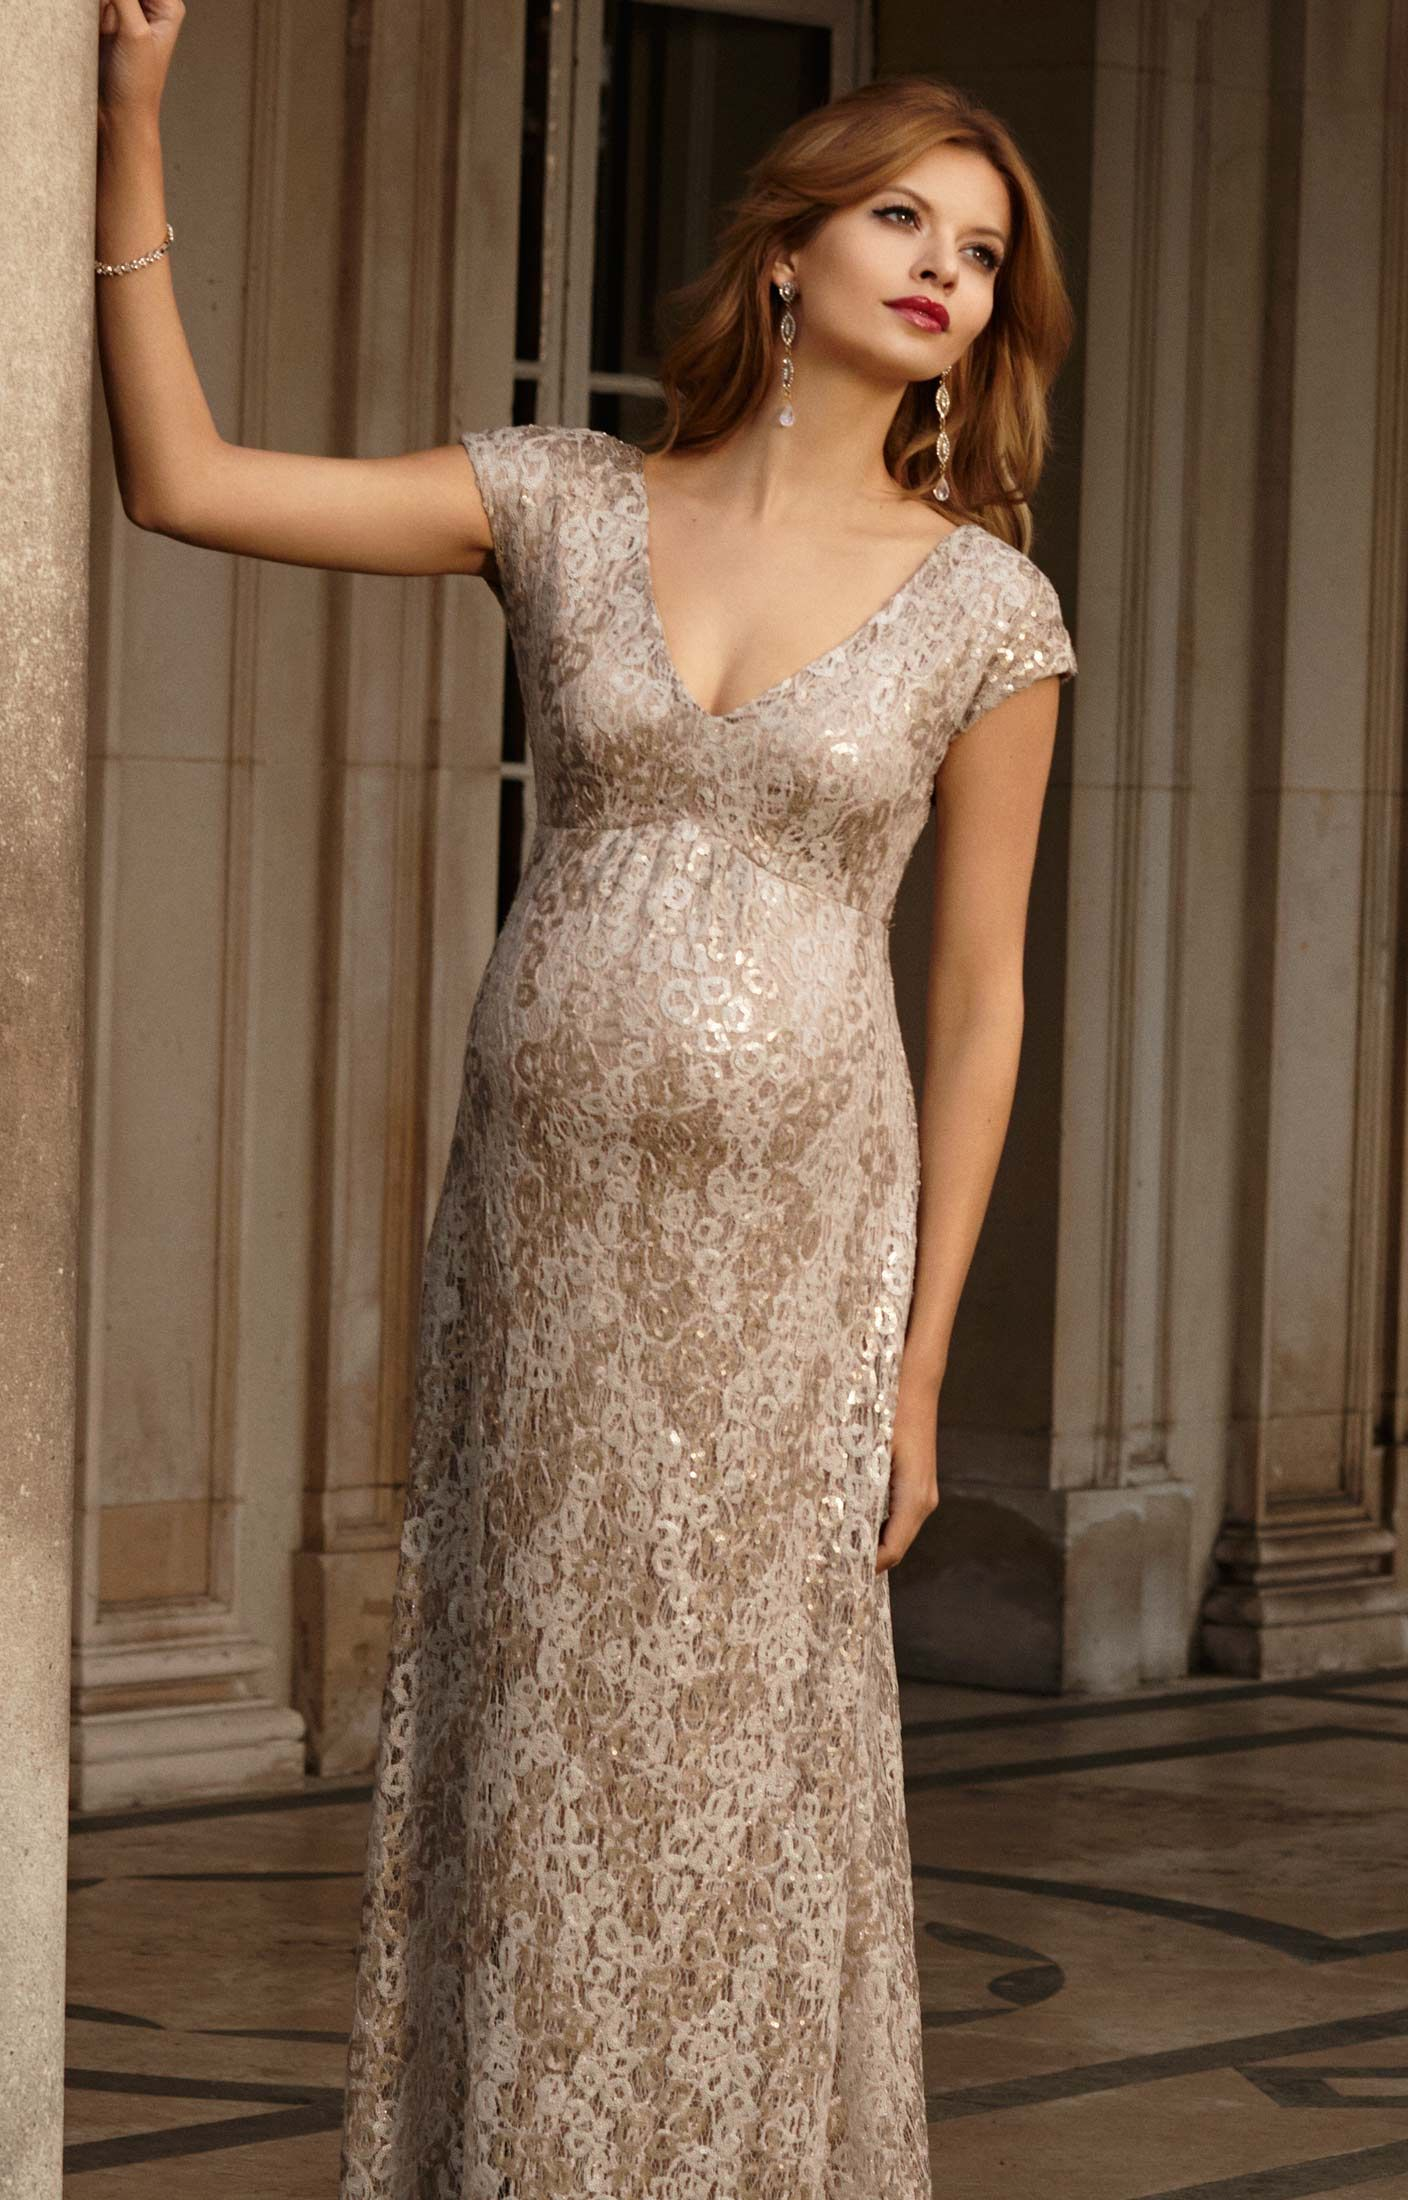 Carmen gown maternity gowns tiffany rose and gowns carmen gown ombrellifo Image collections